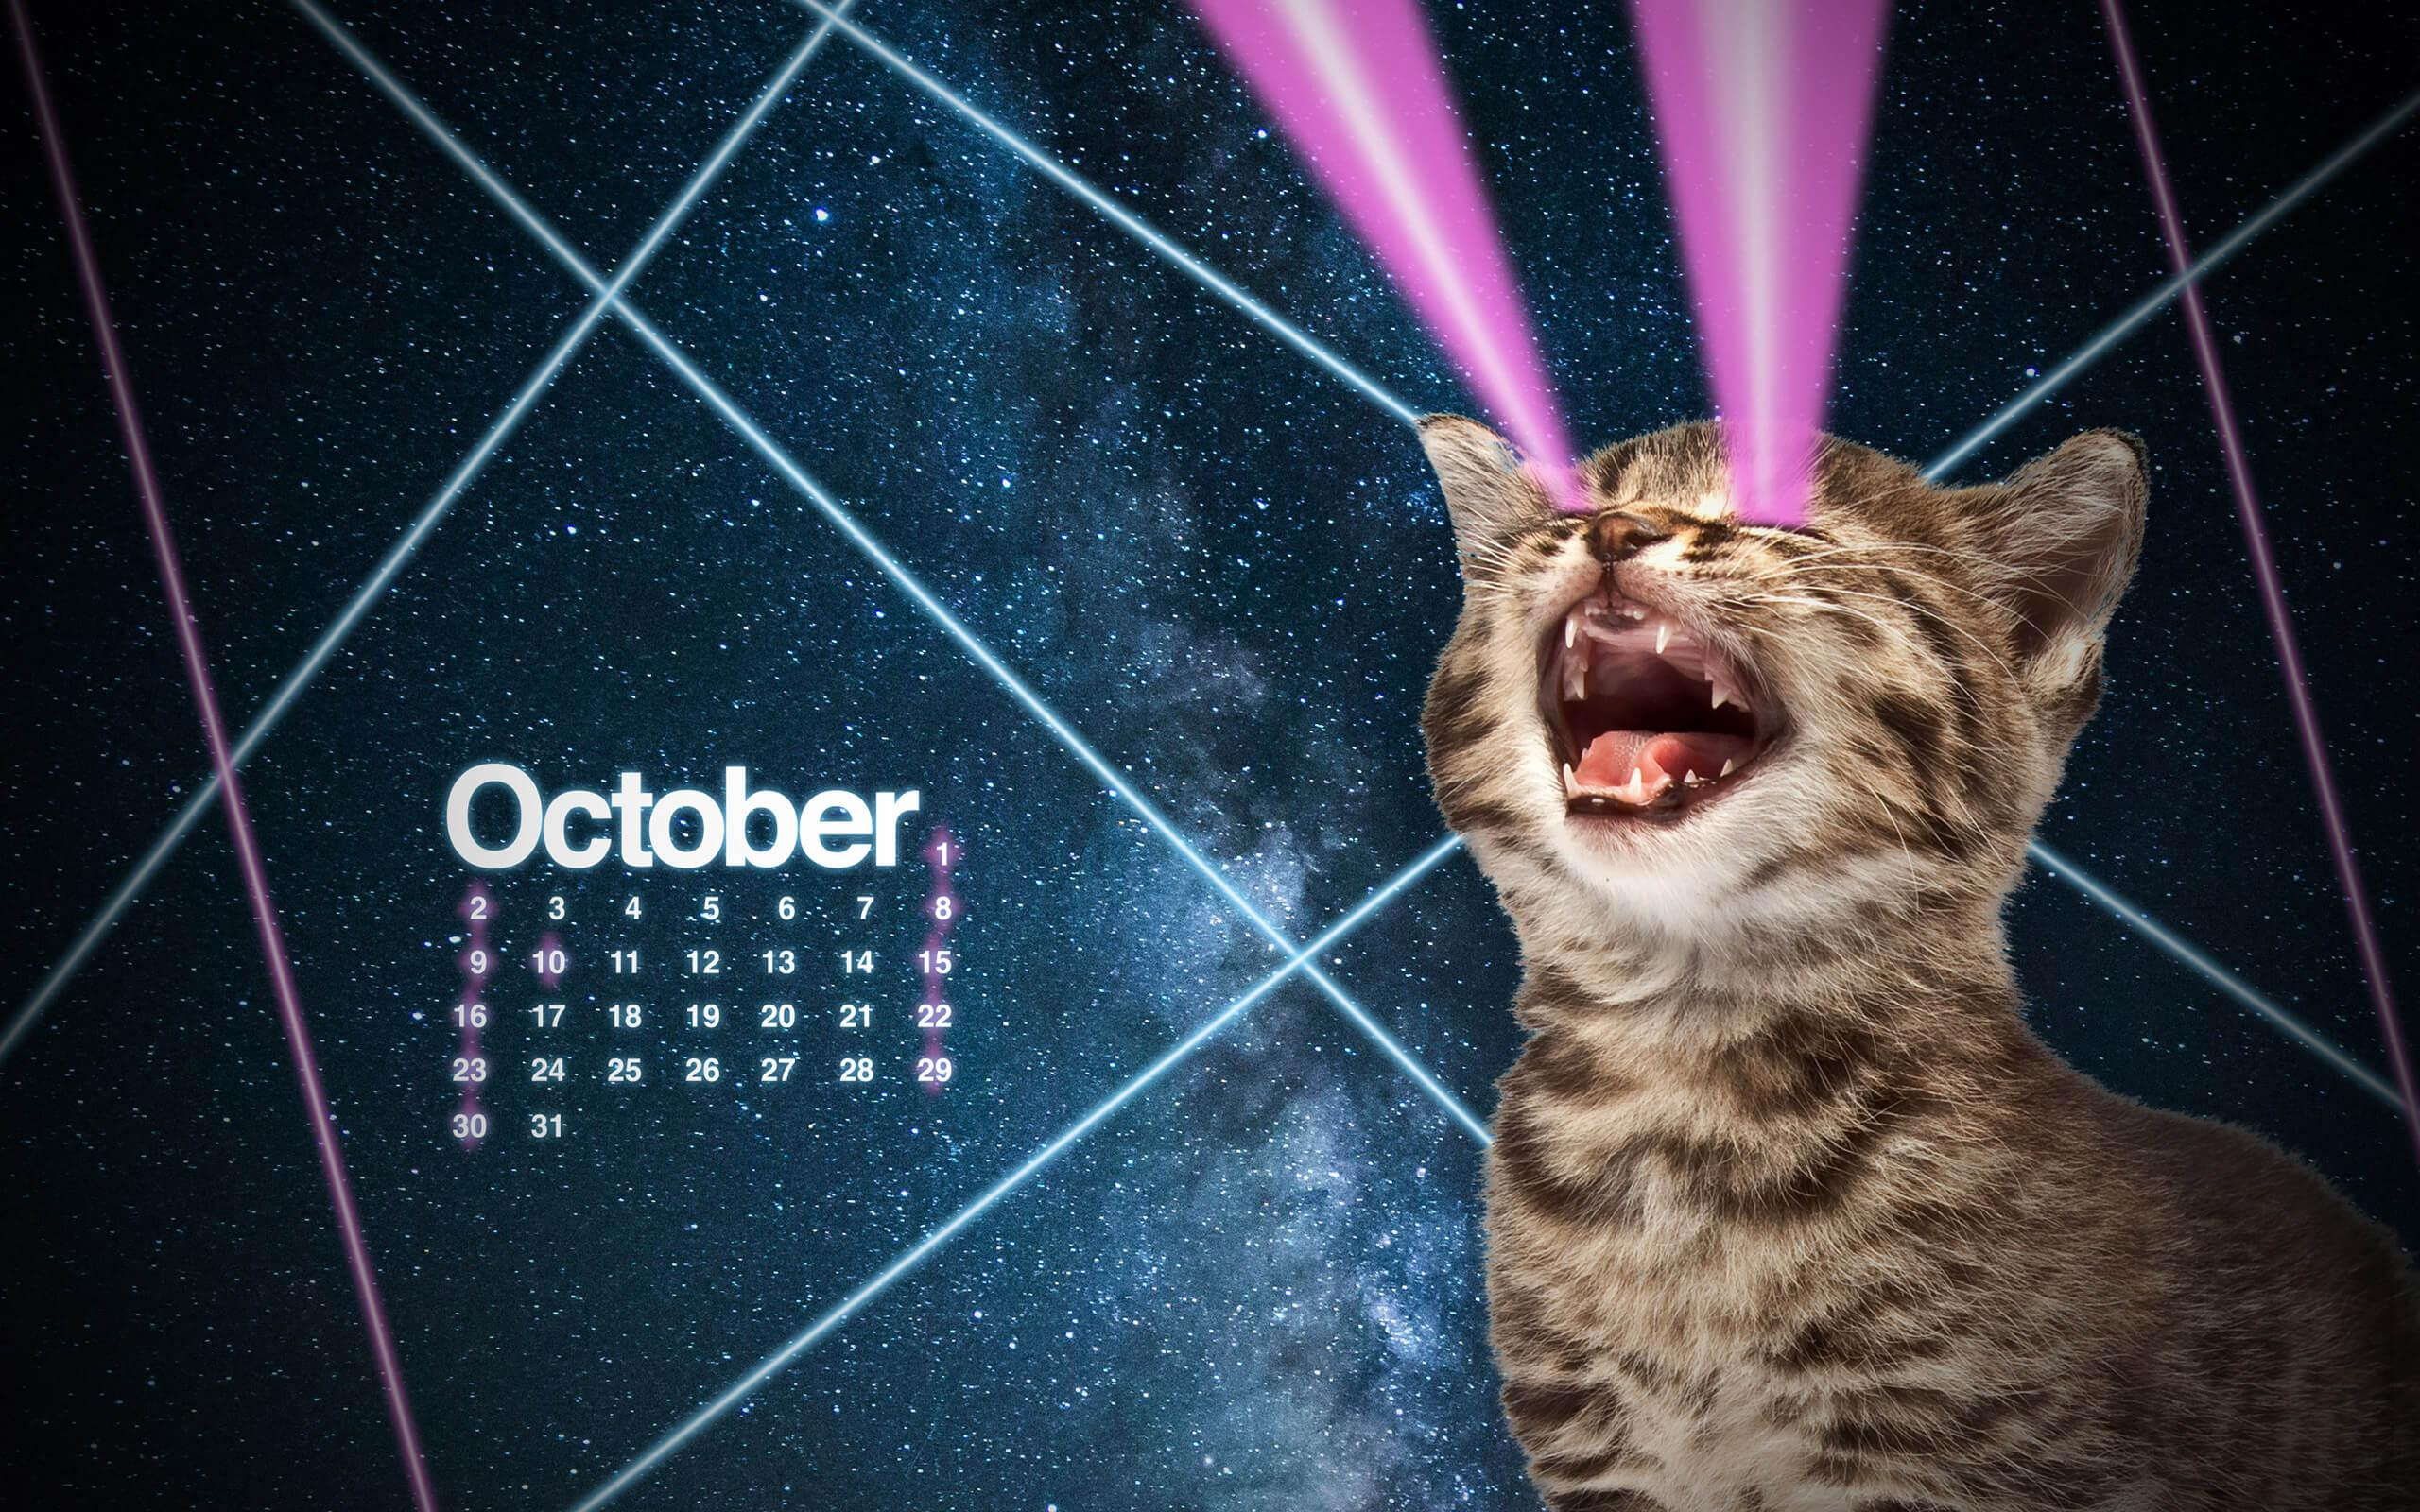 October 2016 Desktop Calendar Wallpapers